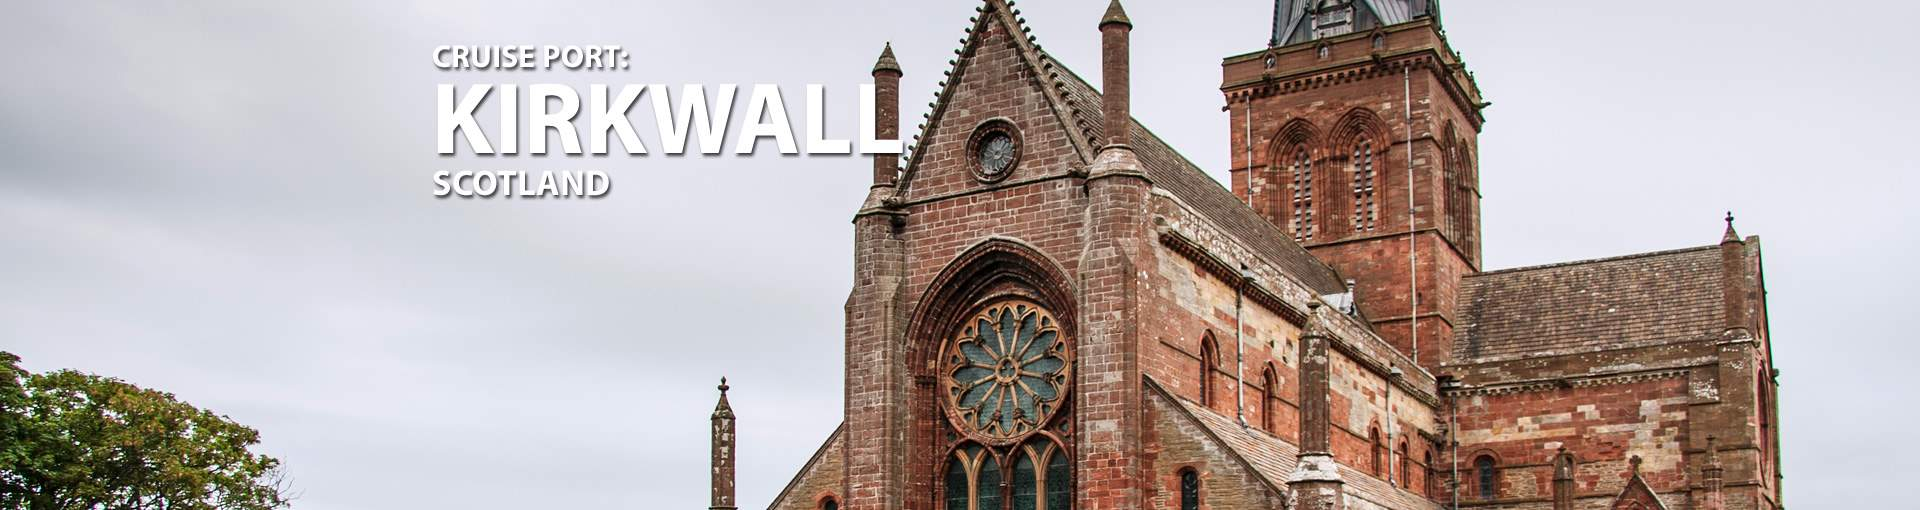 Cruises to Kirkwall, Scotland